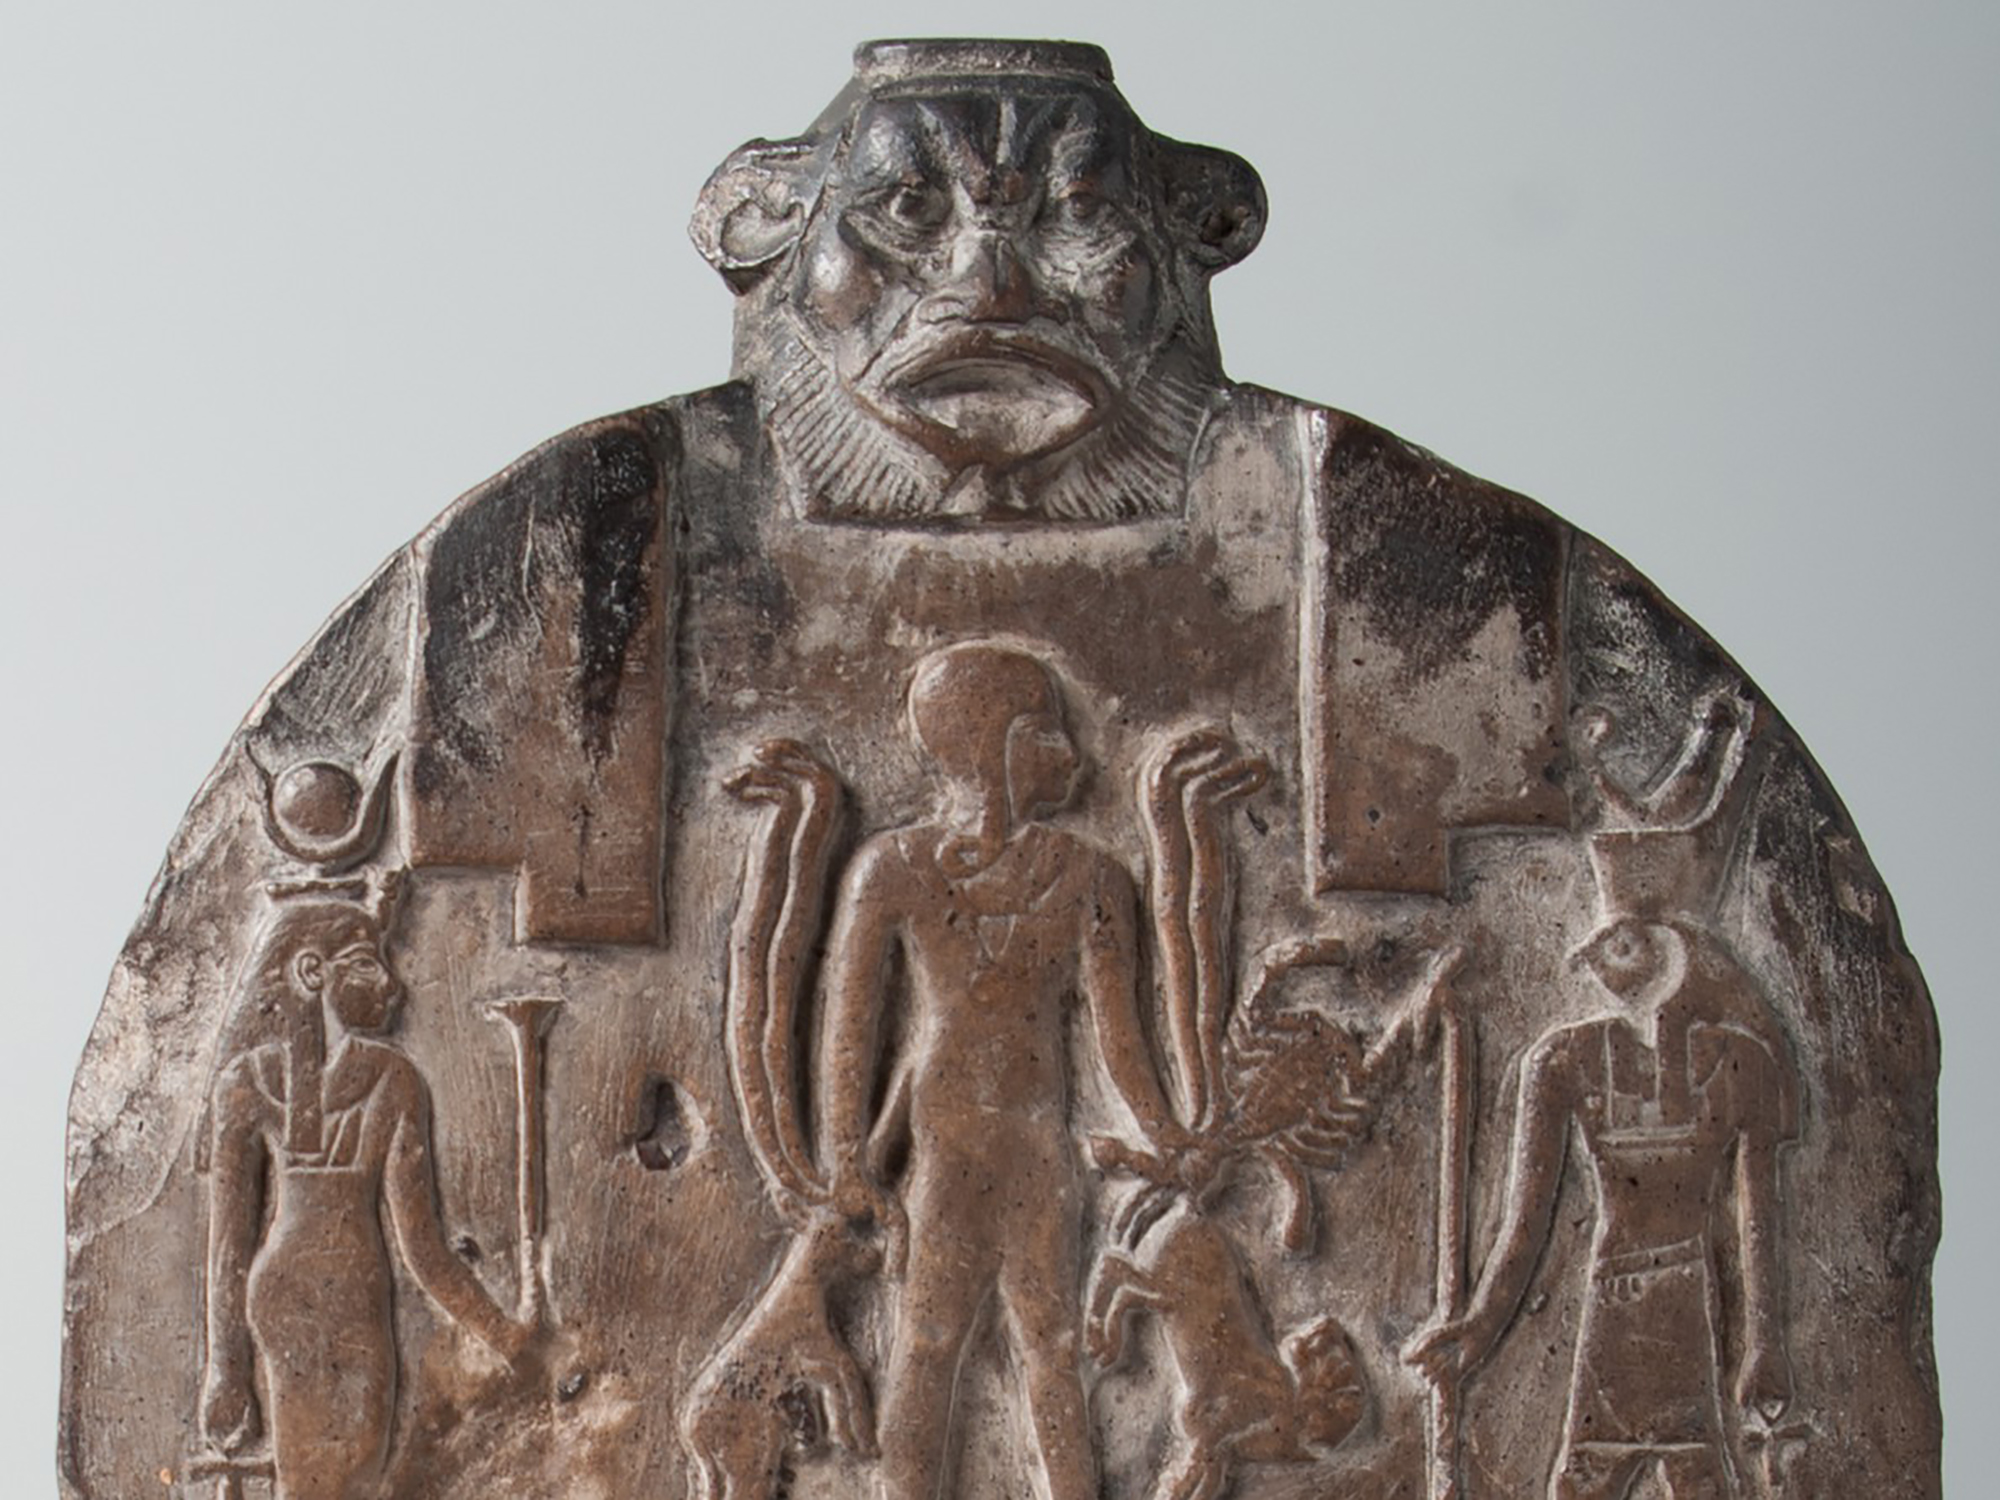 A round-topped limestone slab has two horizontal registers. The upper register depicts the god Horus as a child, holding snakes, a scorpion, a lion, and an oryx; he is standing on two crocodiles. To the left of him is his mother Isis, who wears a long dress and a crown of cow's horns and a sun disk. To the right is Horus as an adult, who has a falcon's head. The lower register shows the goddess Taweret, who has the face and body of a hippopotamus, the paws of a lion, and the tail of a crocodile. She faces a bald man who makes offerings to her.